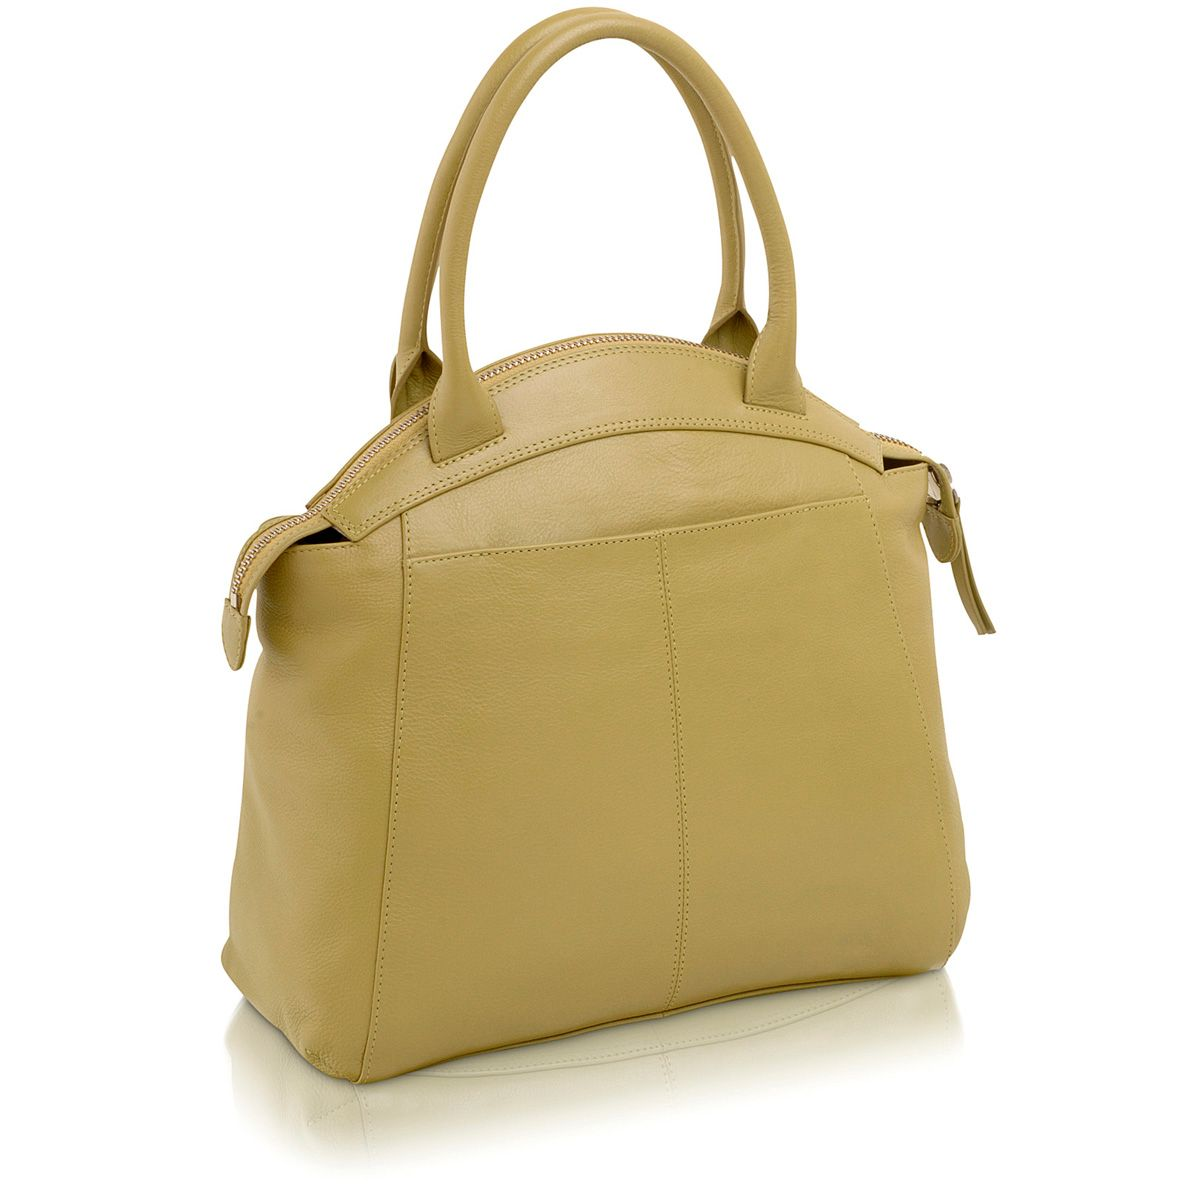 Clayton green large leather grab bag